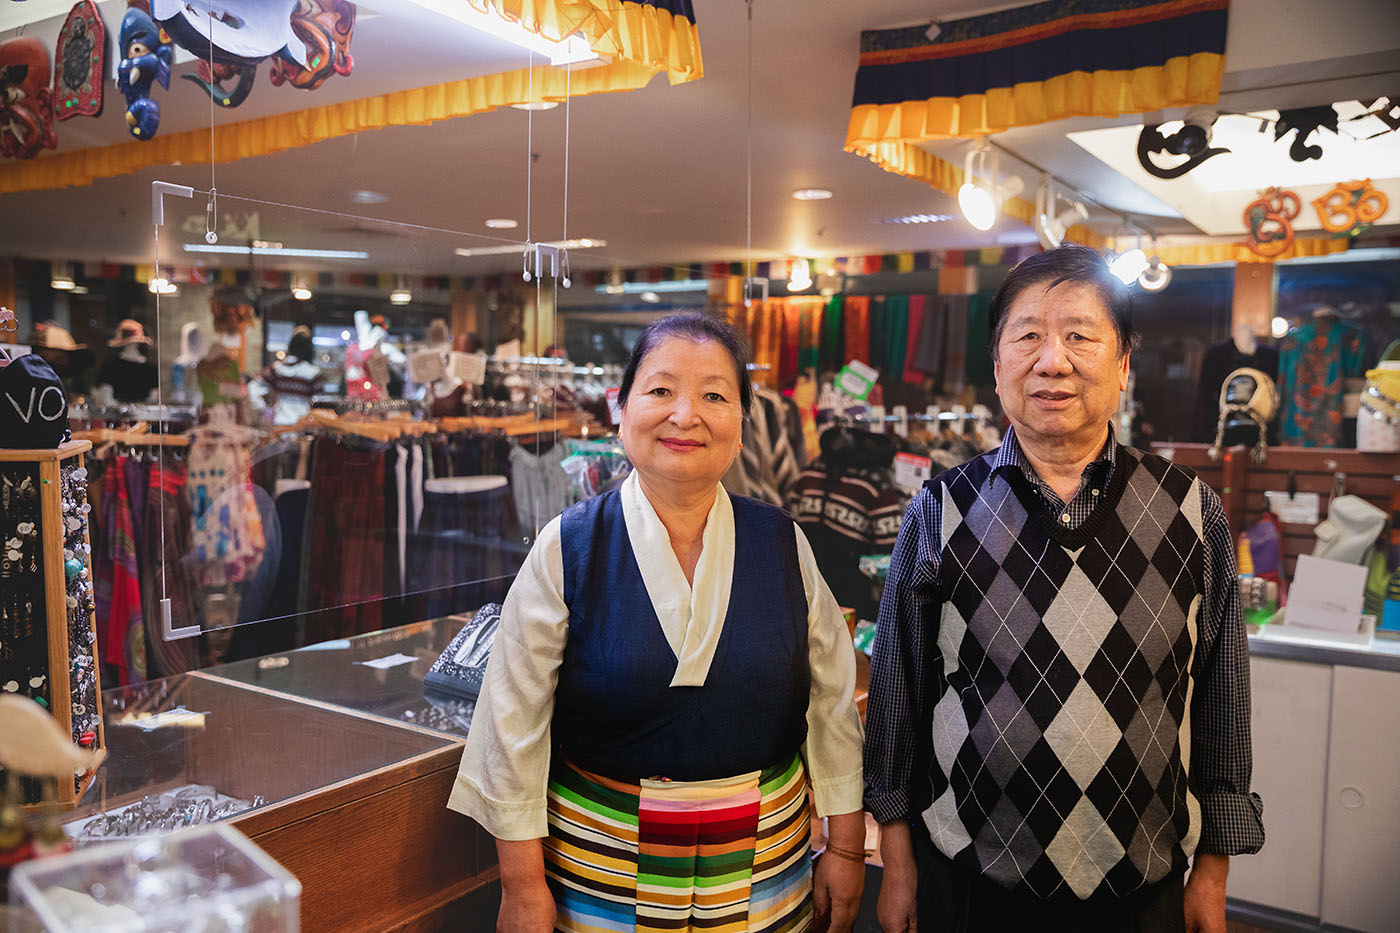 (L–R) Yeshi Shekhang and her husband Sonam Shekhang have found Utah to be a welcoming place to raise their family and establish their business.